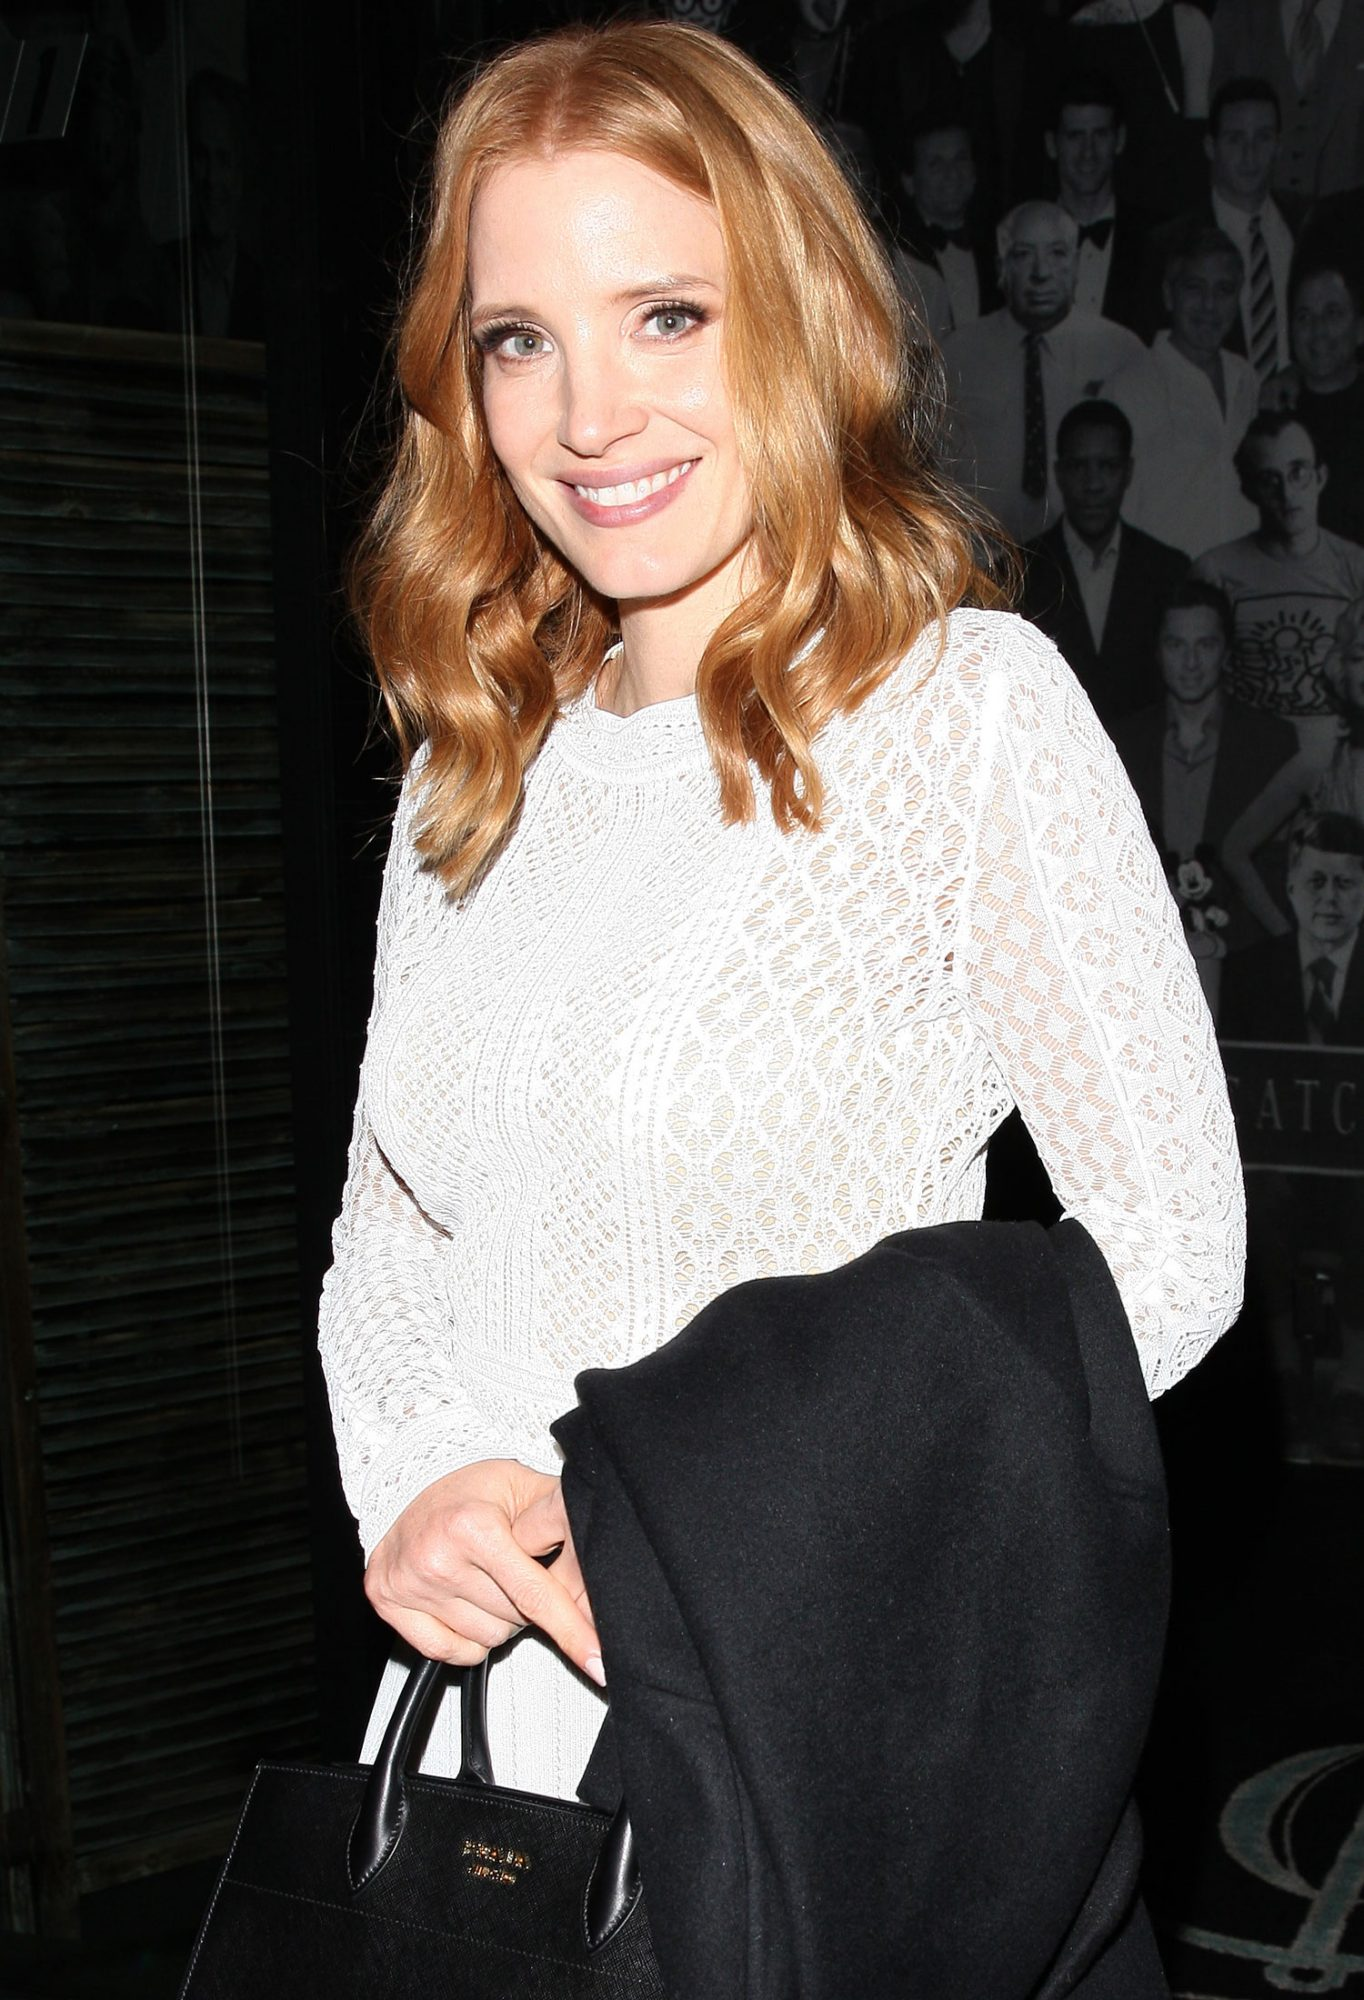 Jessica Chastain leaves 'Catch' restaurant with her friends in West Hollywood